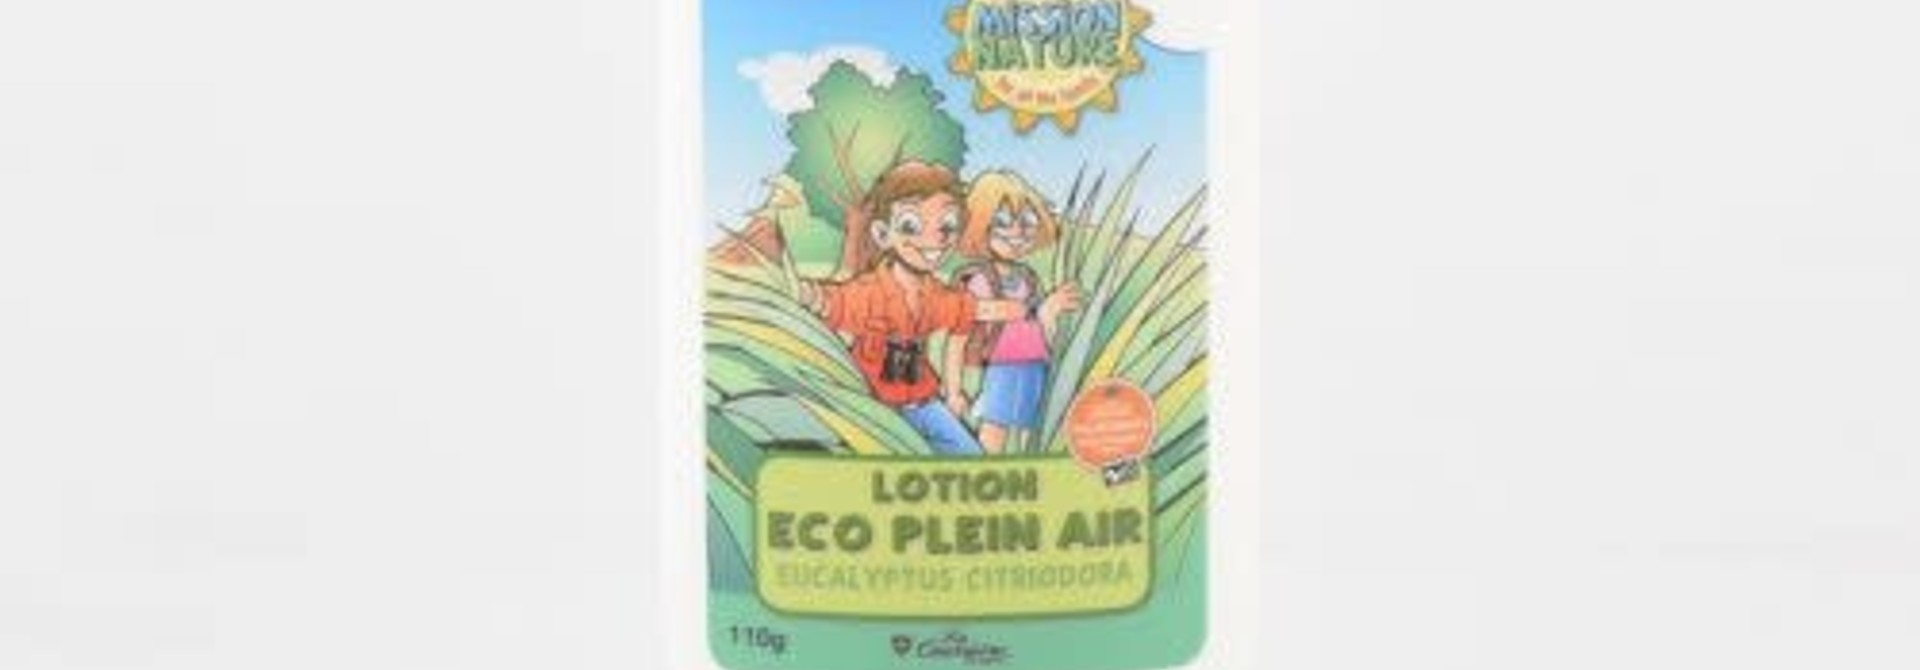 Lotion Eco Plein Air 110g